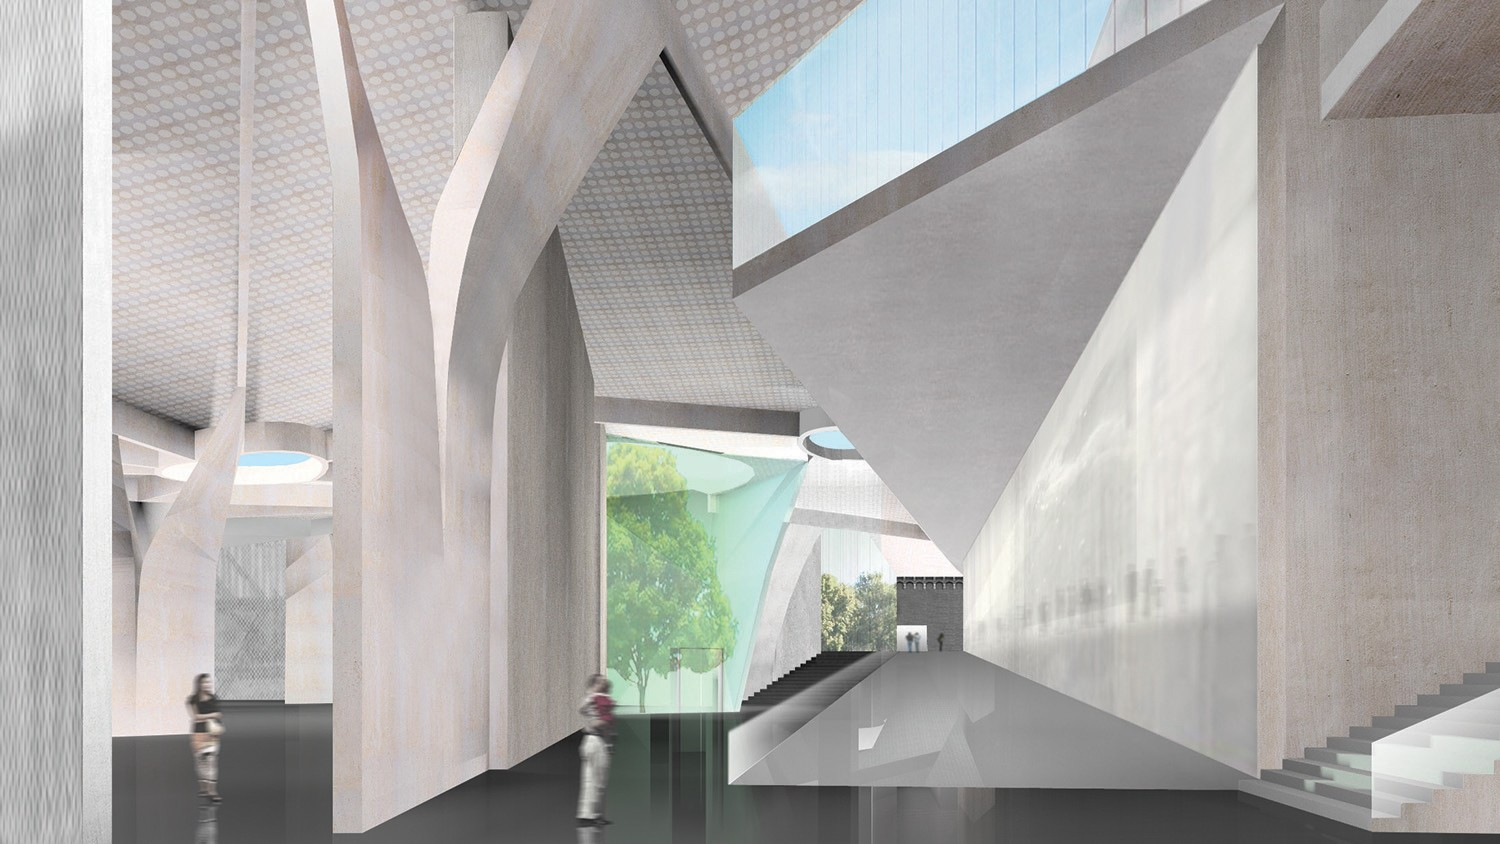 https://stevenholl.sfo2.digitaloceanspaces.com/uploads/projects/project-images/StevenHollArchitects_LANH_interior4_WH.jpg